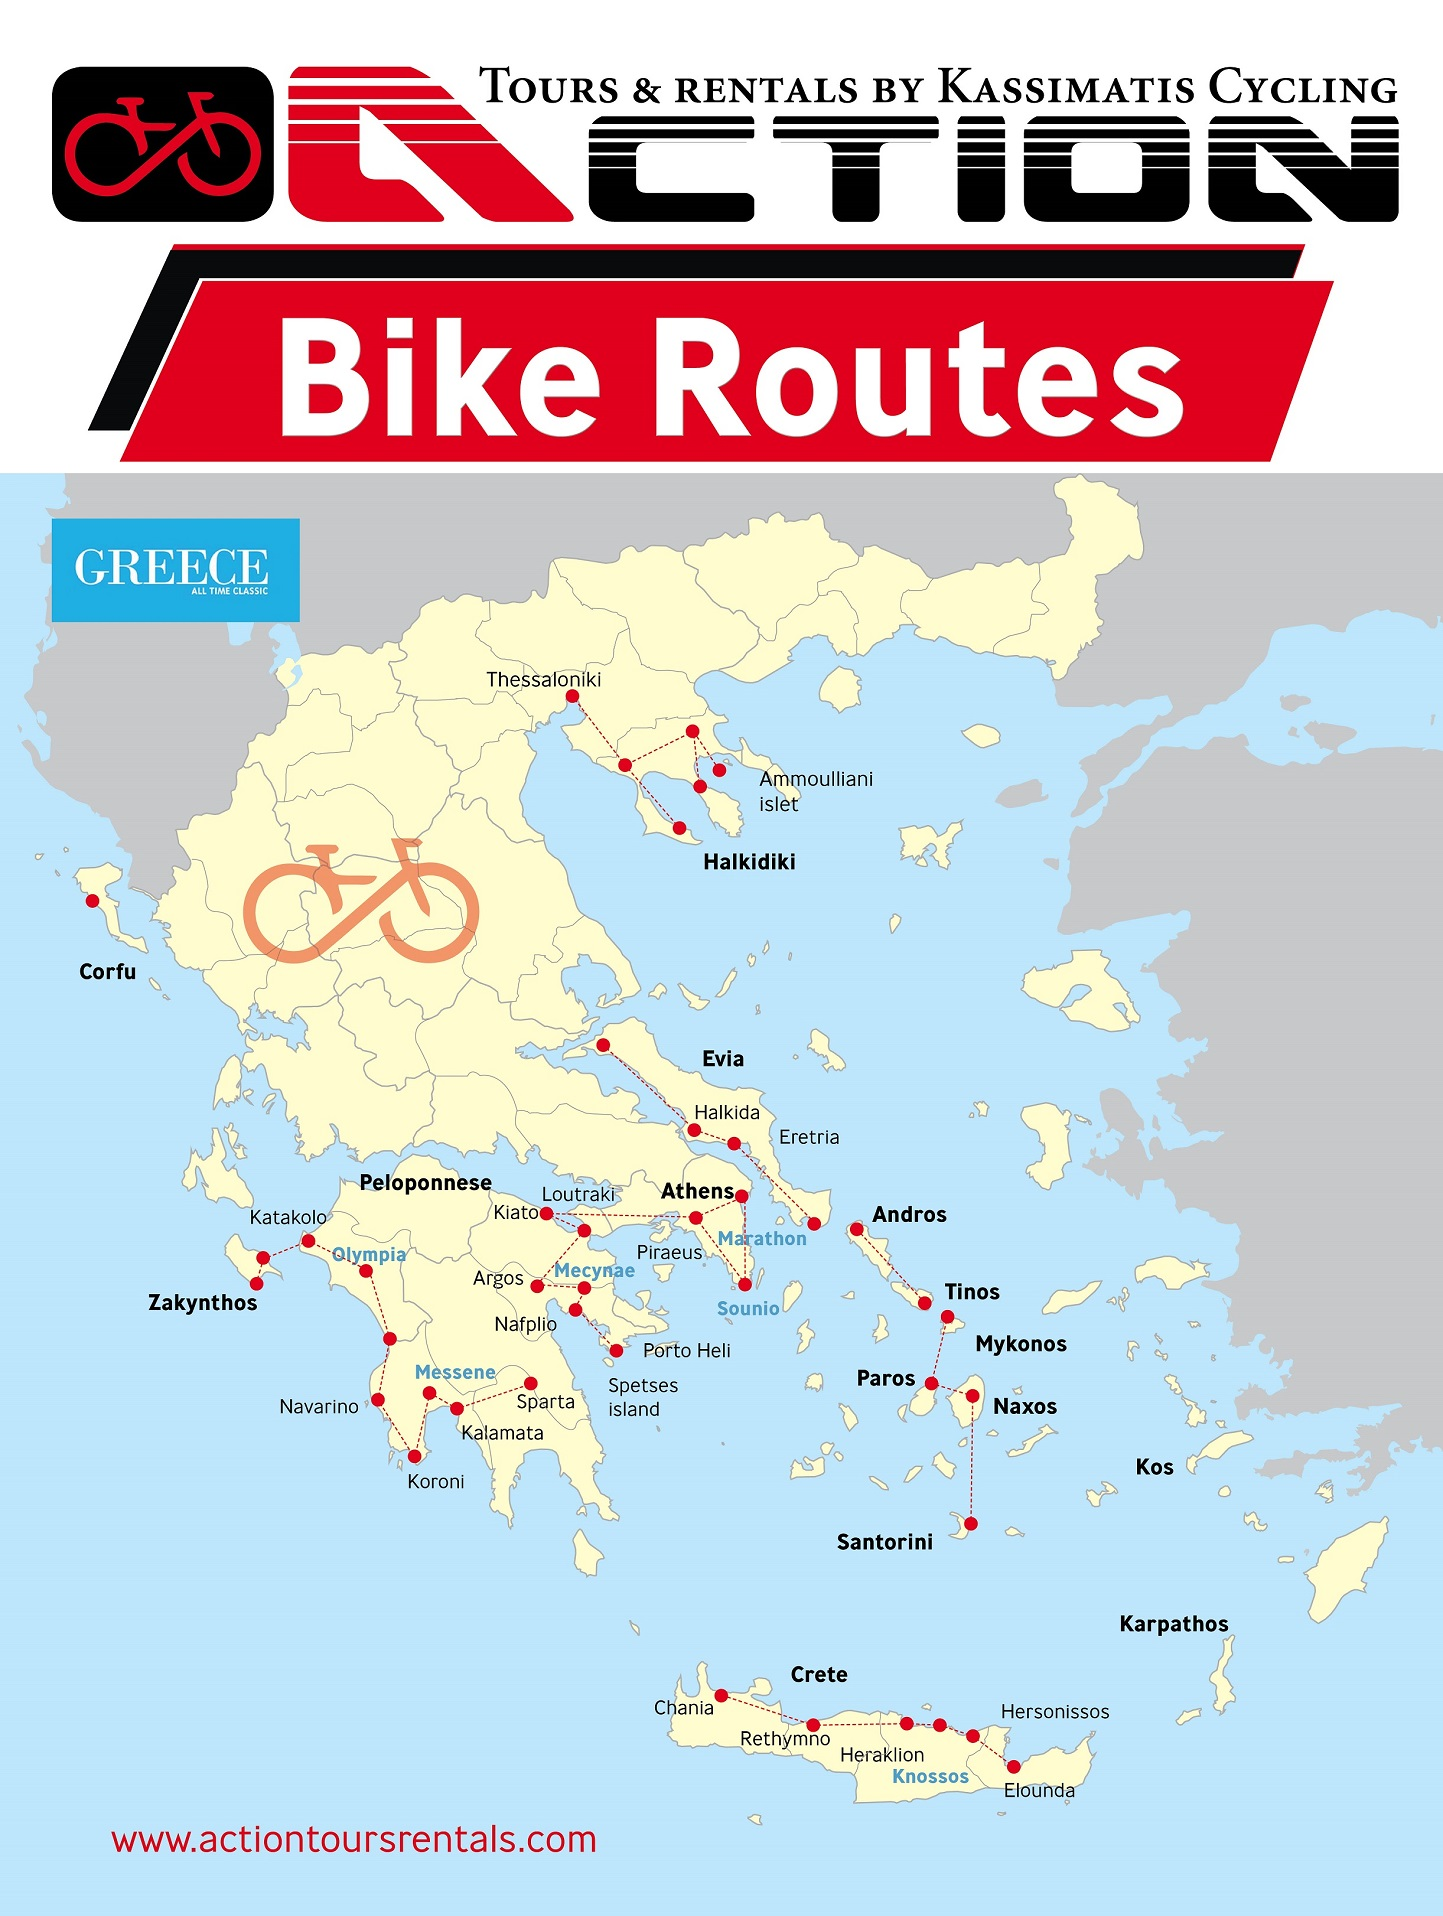 Cycling Tours Rentals in Greece